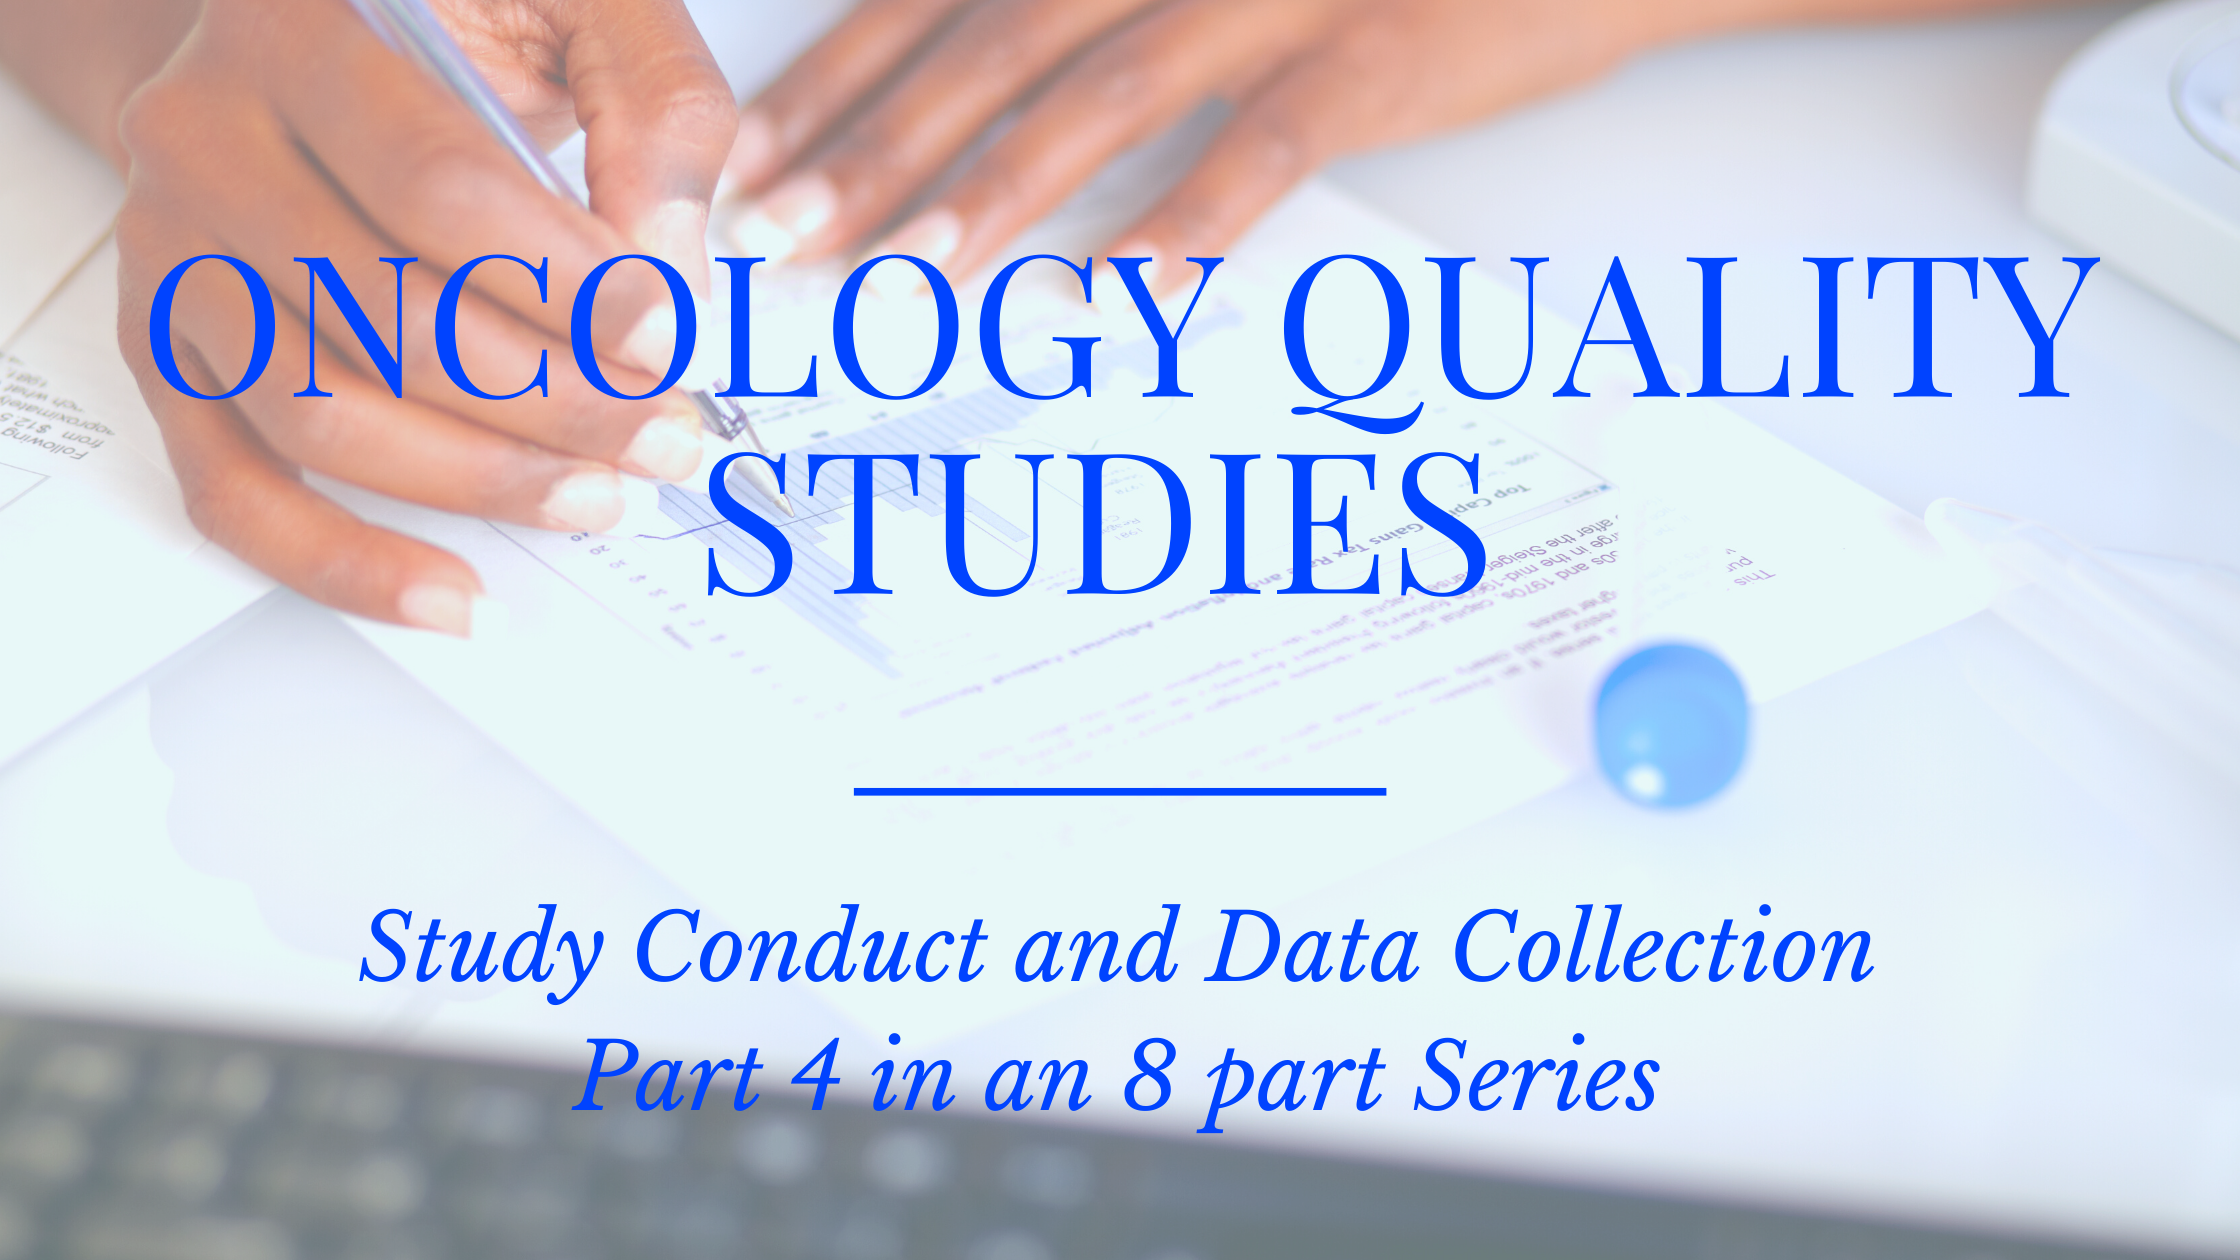 Oncology Quality Studies:Study Conduct and Data Collection (Part 4)